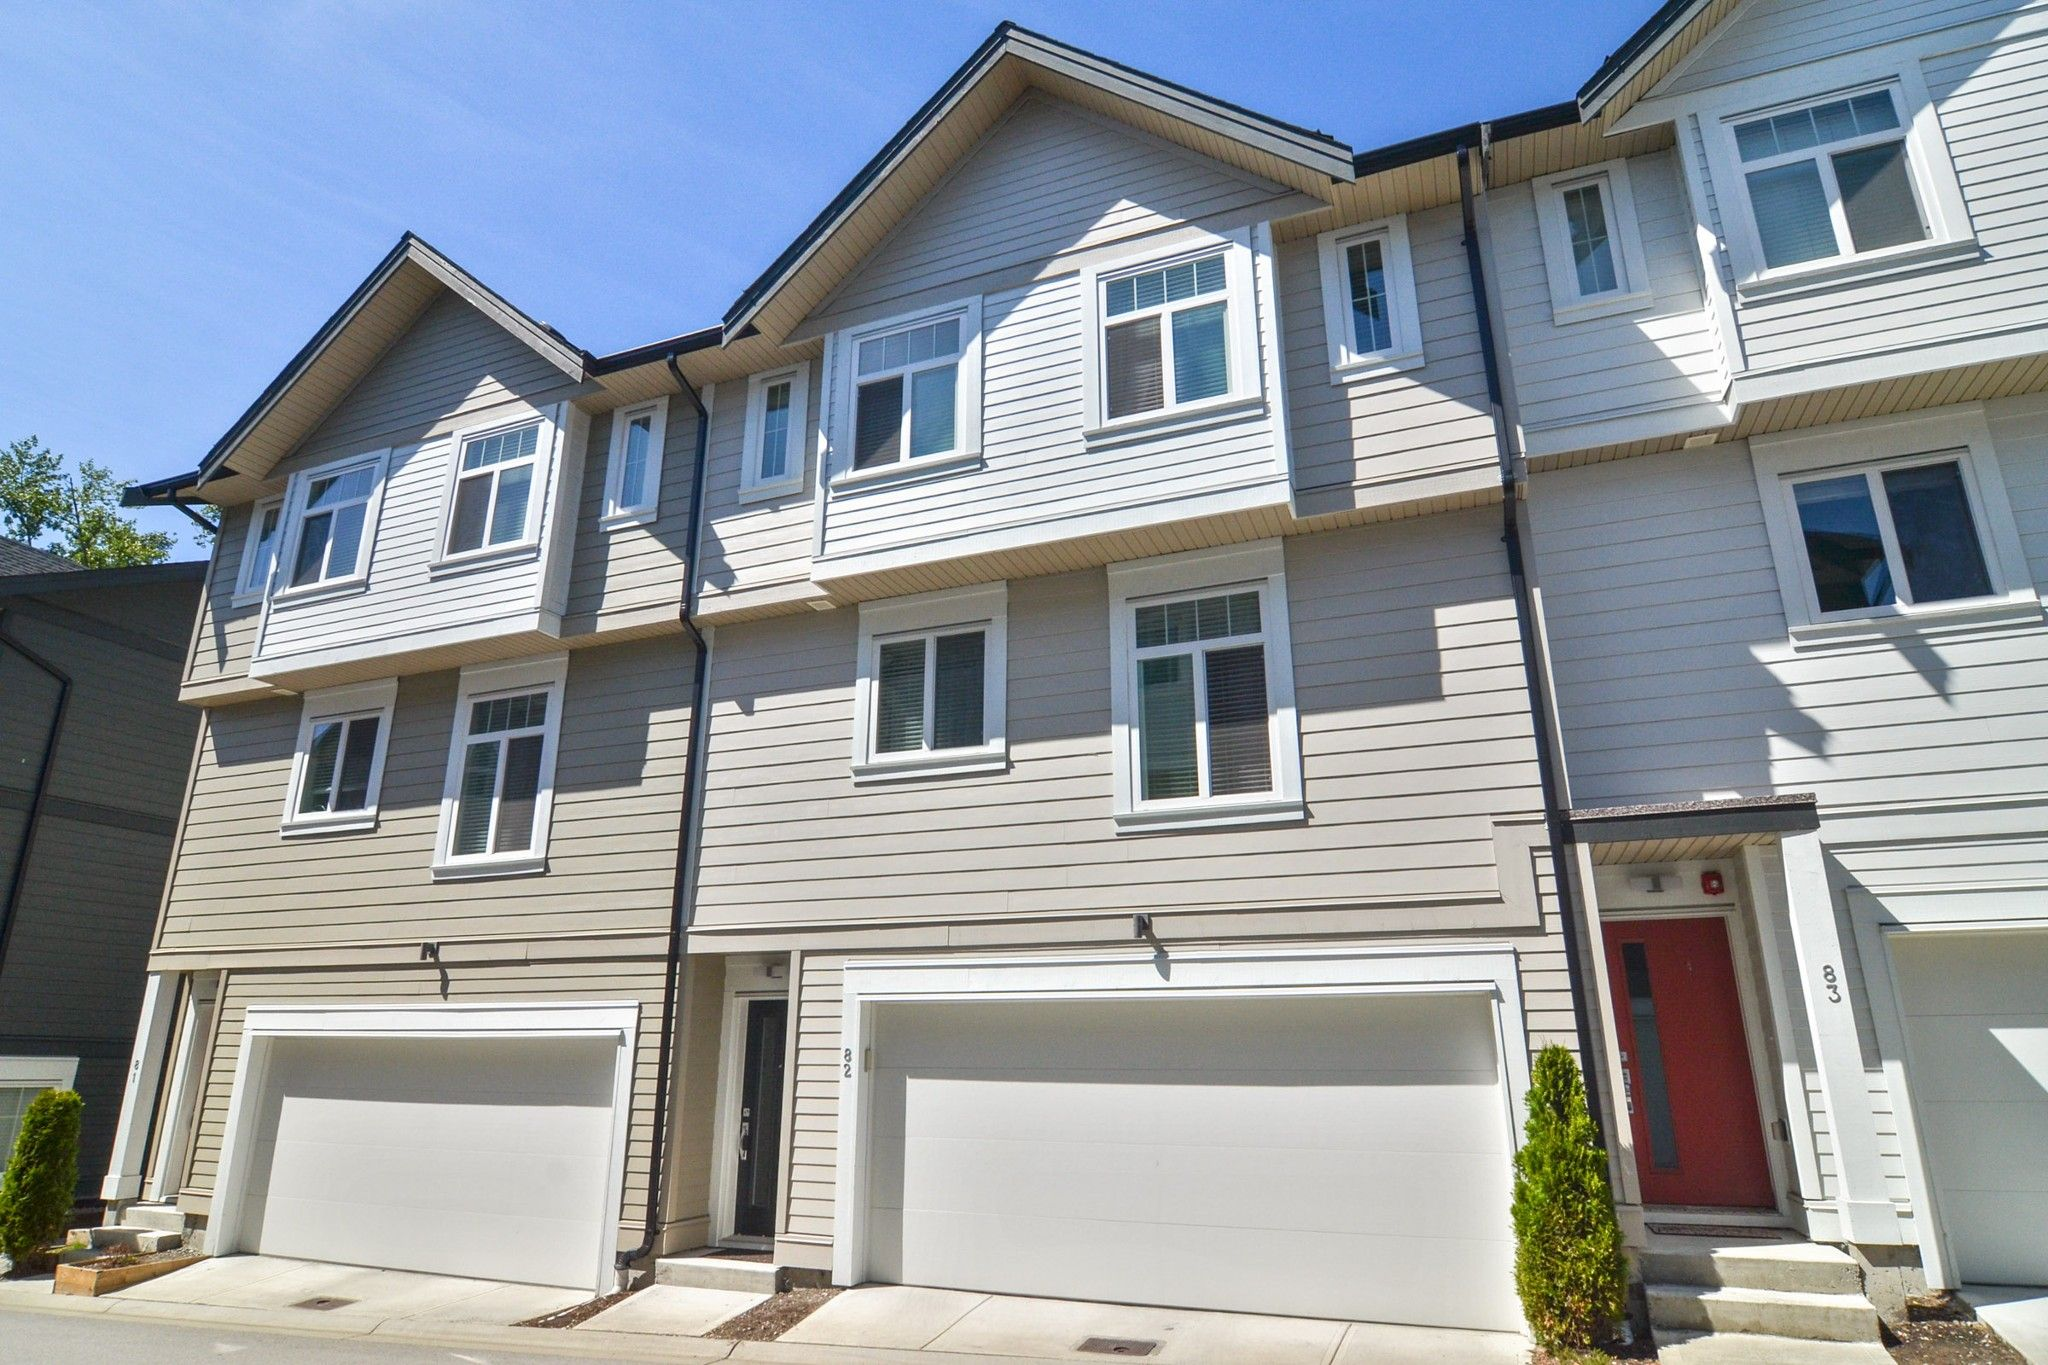 """Main Photo: 82 7665 209 Street in Langley: Willoughby Heights Townhouse for sale in """"Archstone"""" : MLS®# R2594119"""